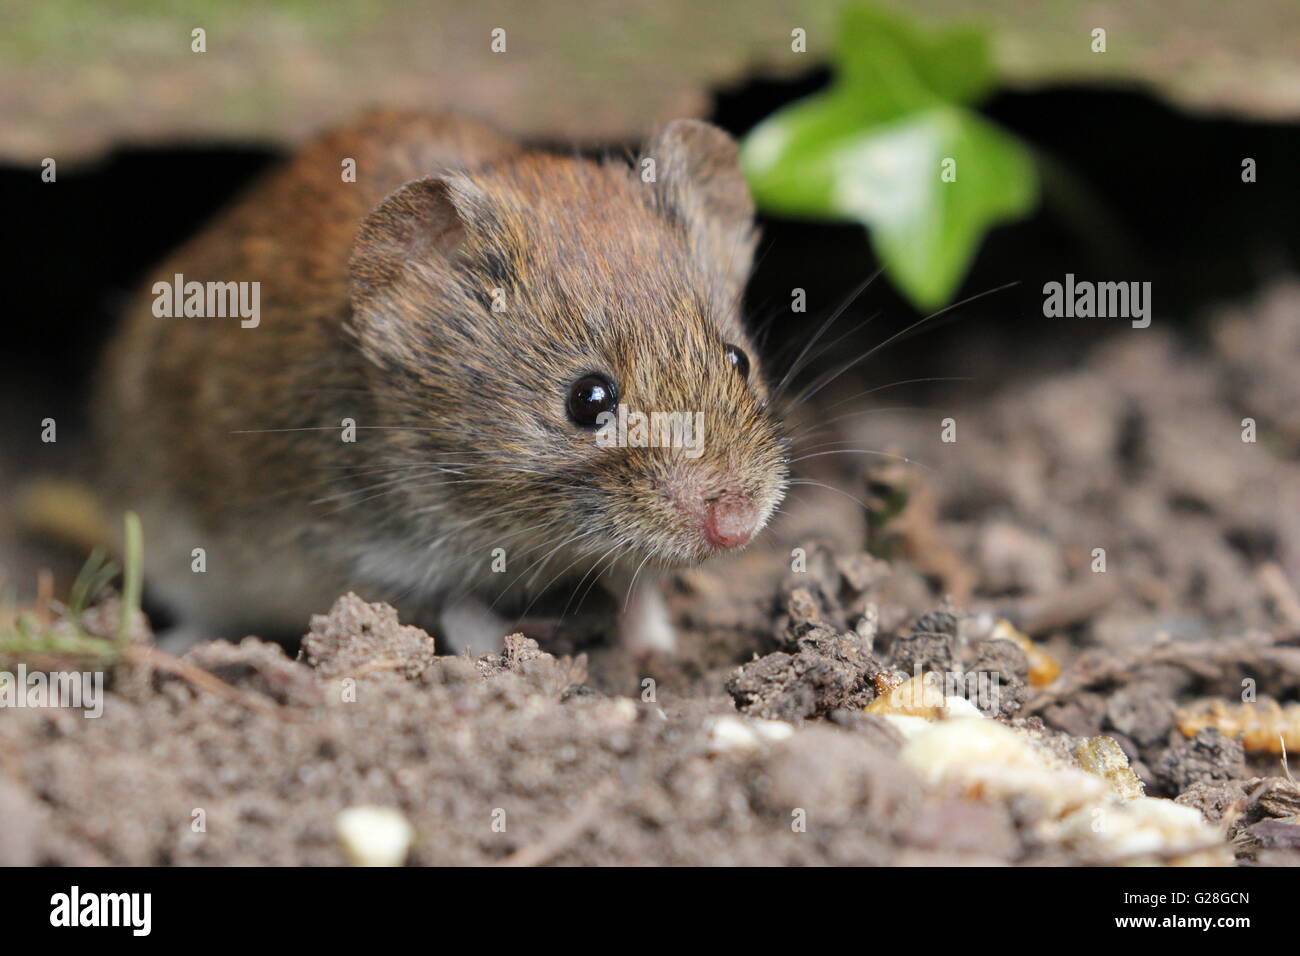 Vole and Ivy - Stock Image